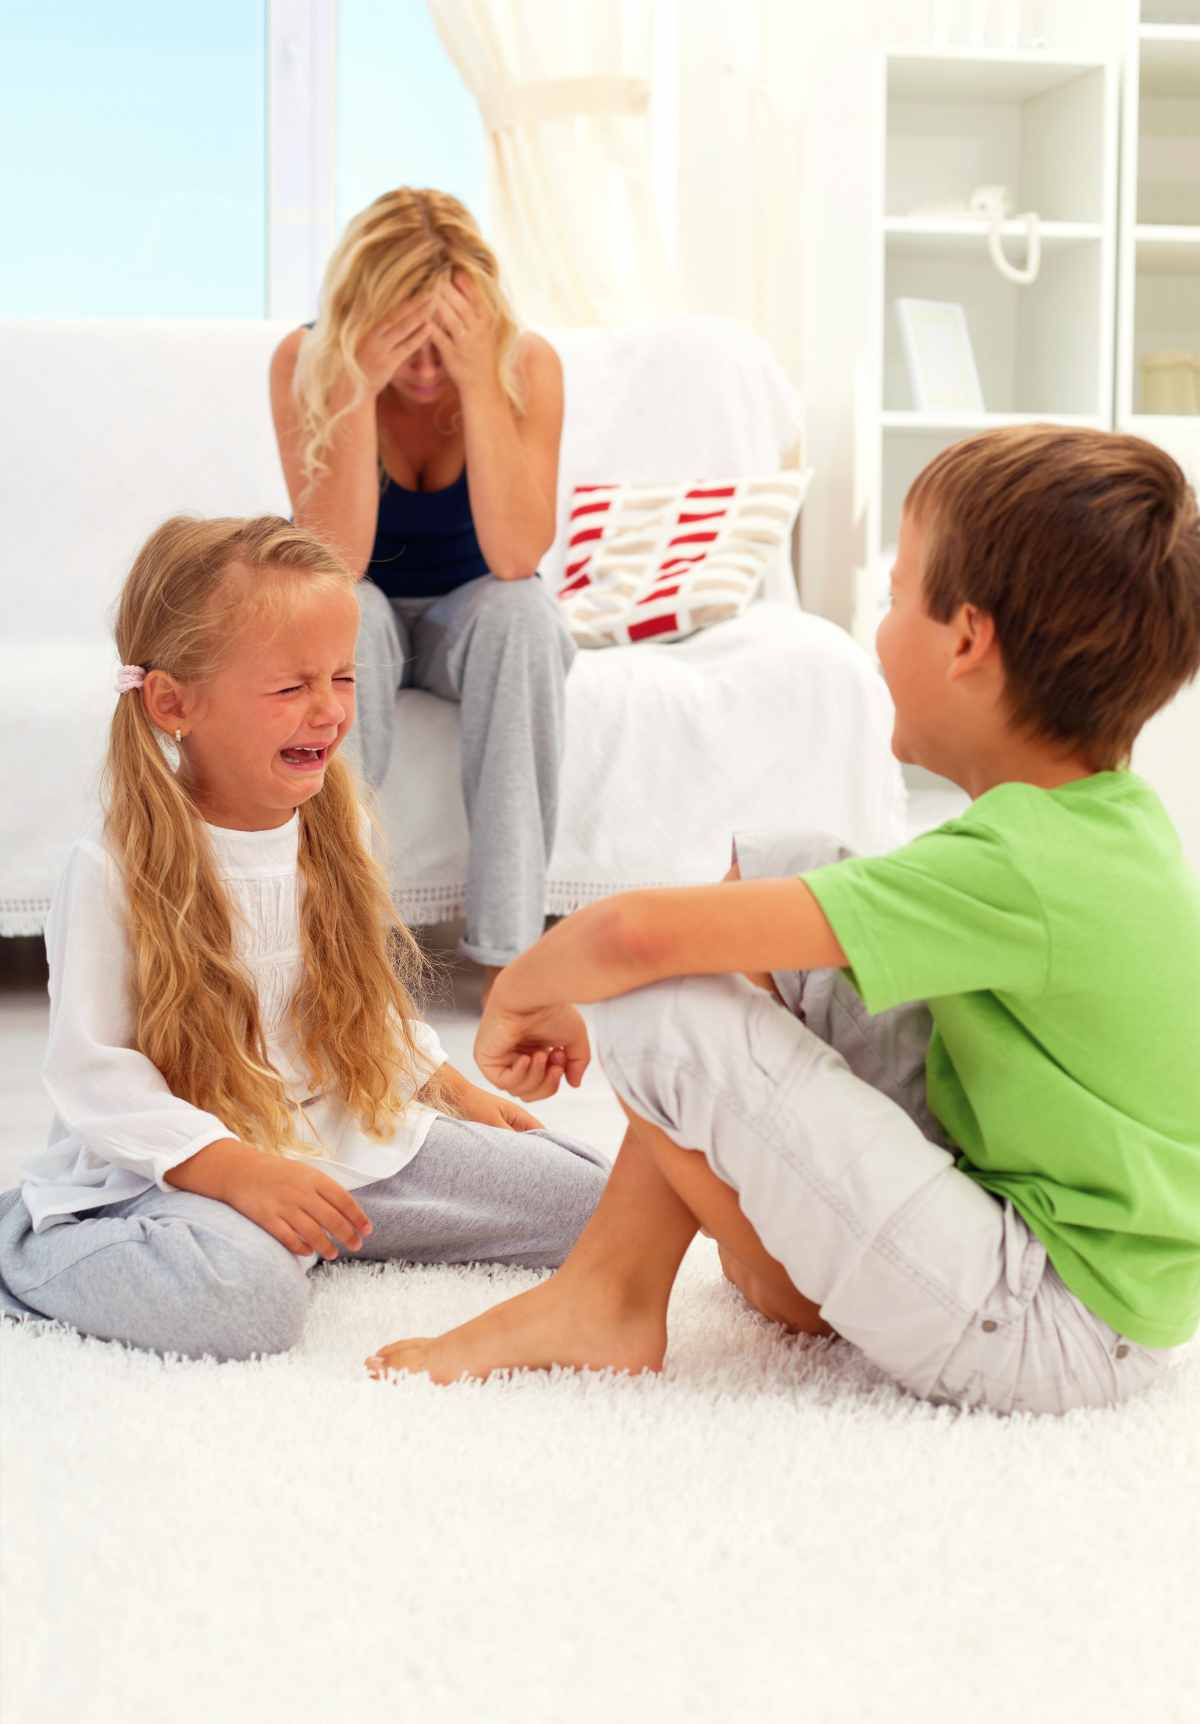 Kids Fighting and Crying | Spotting The Signs of Sibling Rivalry And How To Deal With It | sibling jealousy